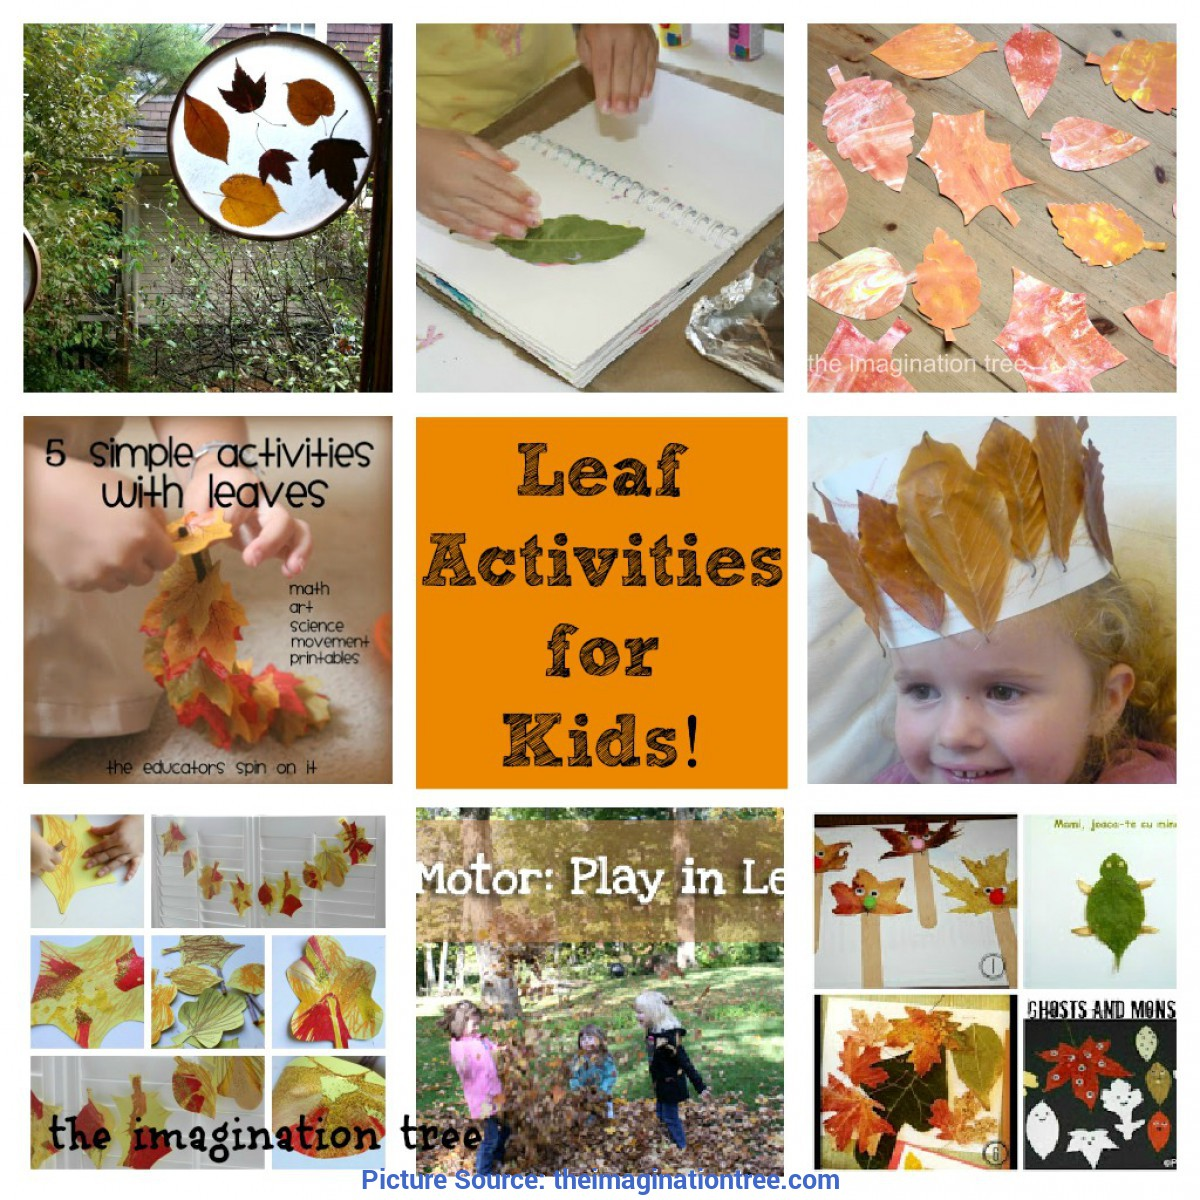 Simple Fun Activities With Leaves Leaf Activities For Kids! [From It'S Playtime] - The Imagination